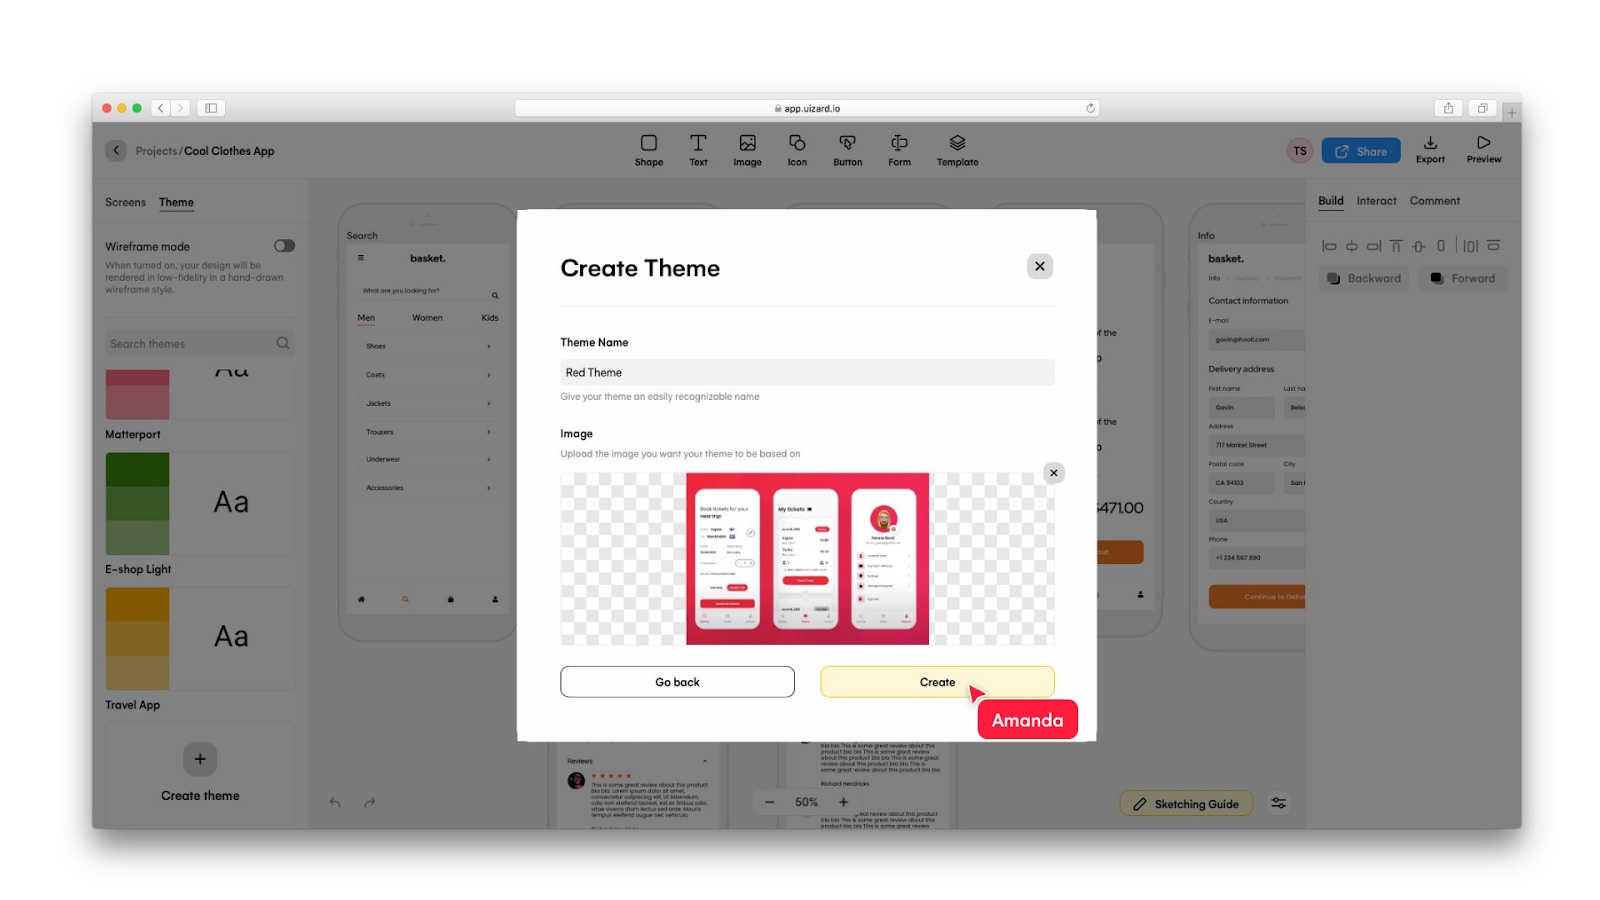 Uploading a screenshot of a Dribbble design in Uizard - Uizard and Dribbble